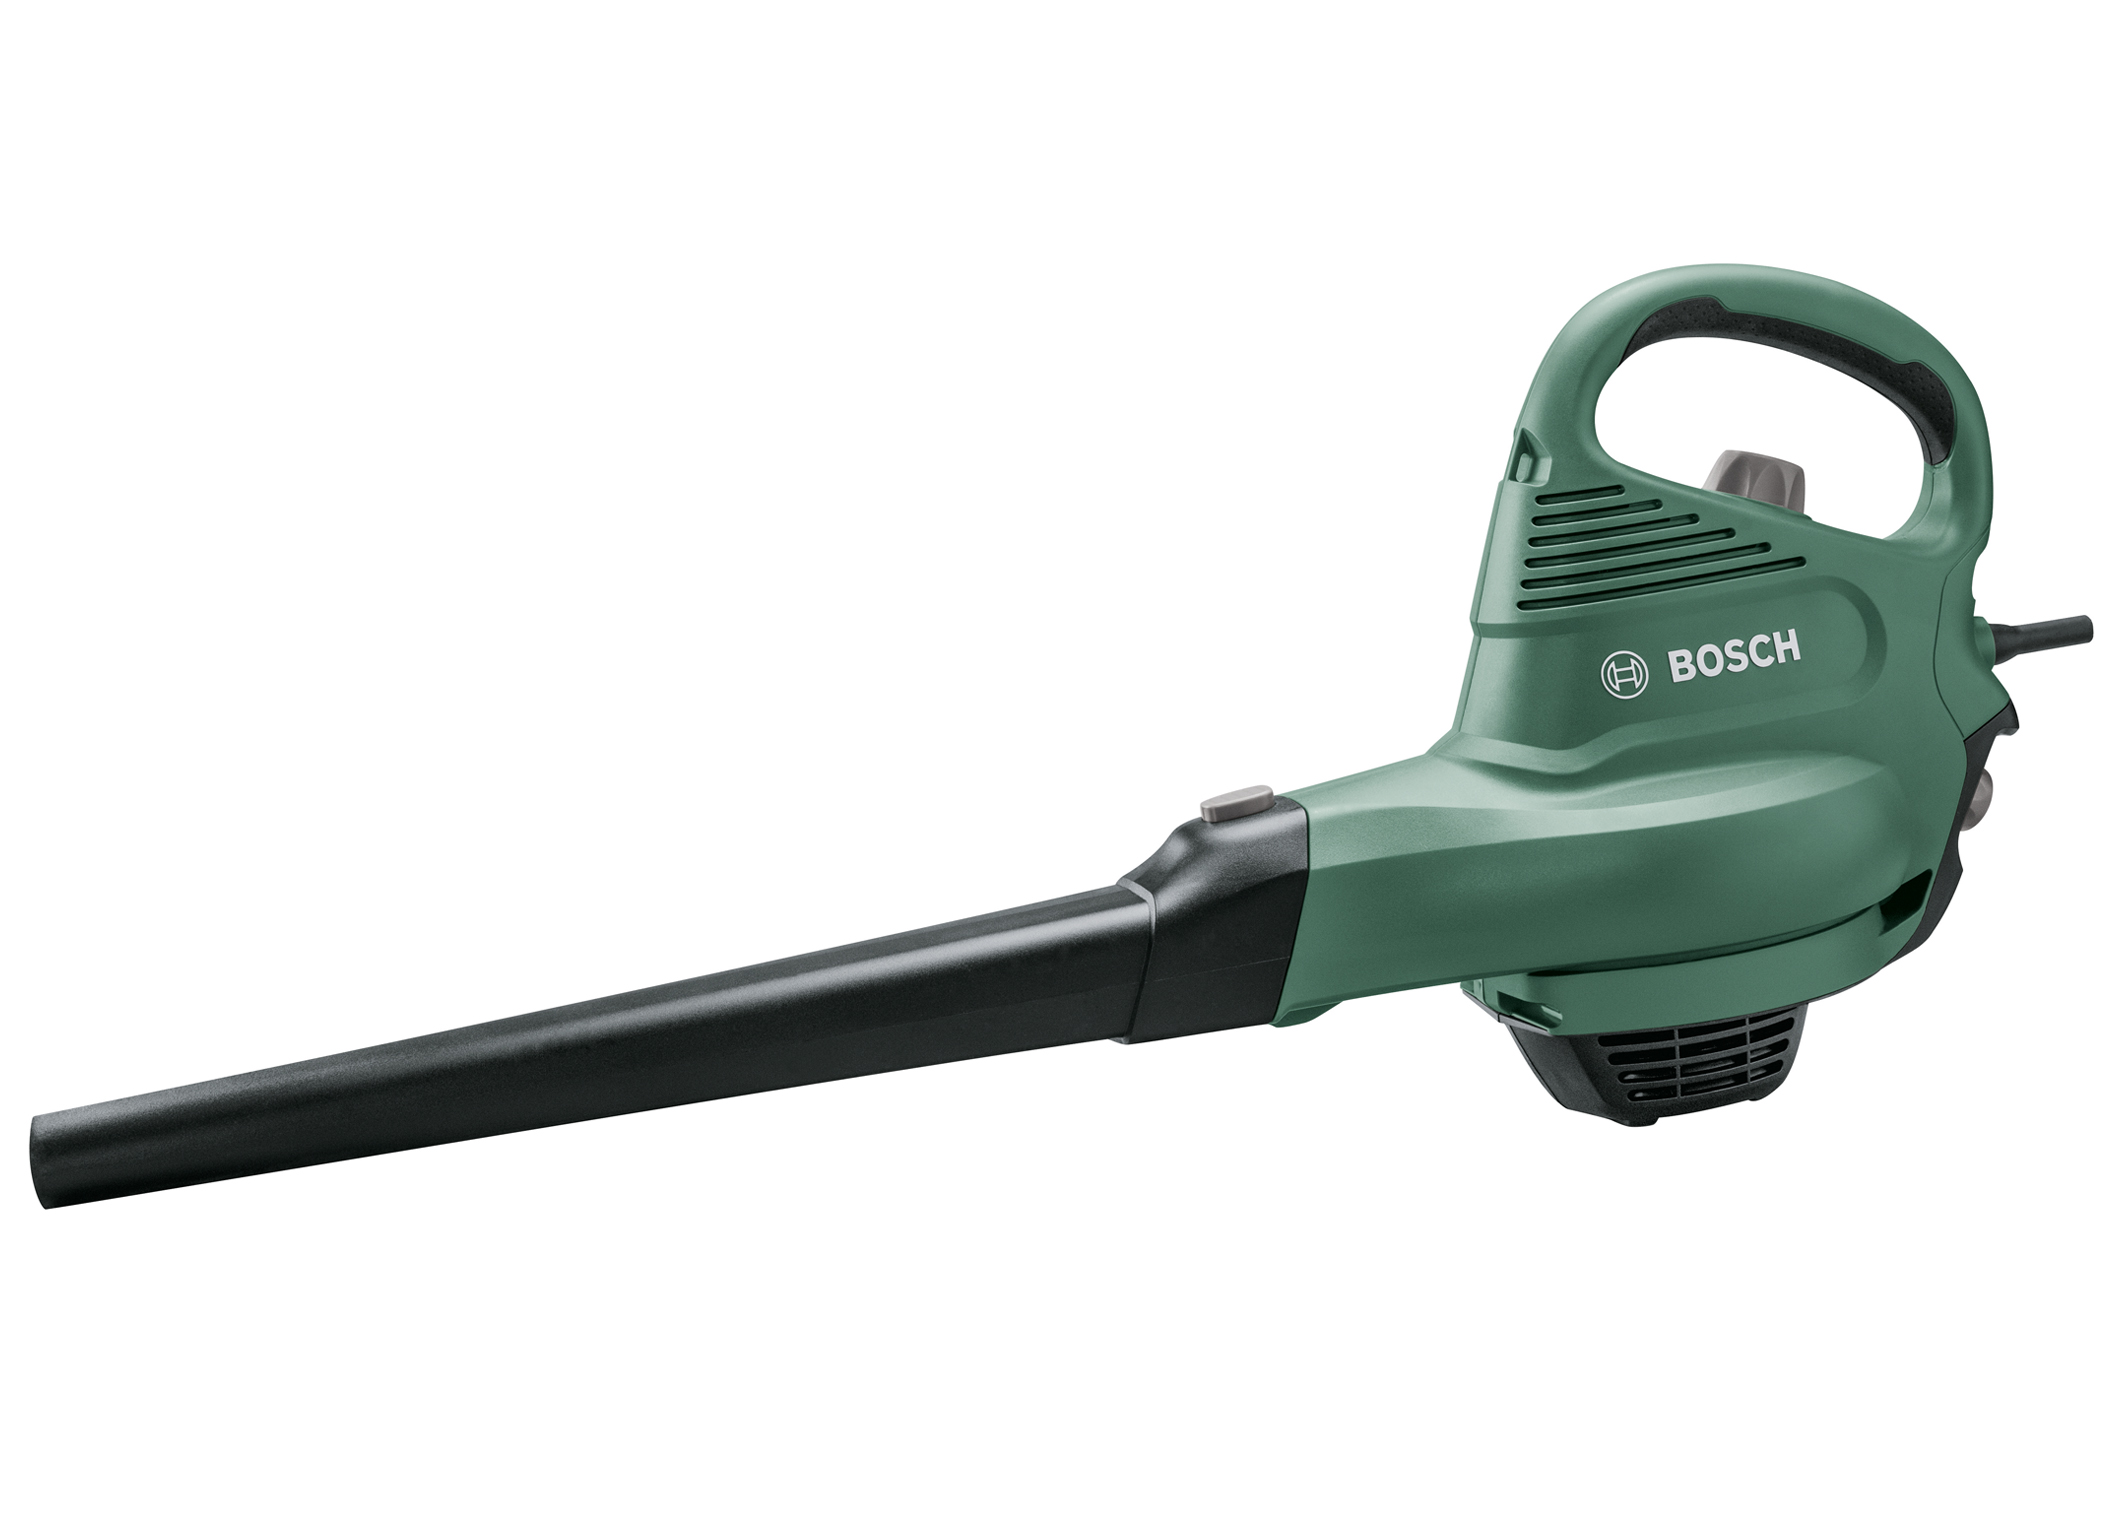 New, user-friendly leaf blower/garden vacuum: The UniversalGardenTidy from Bosch